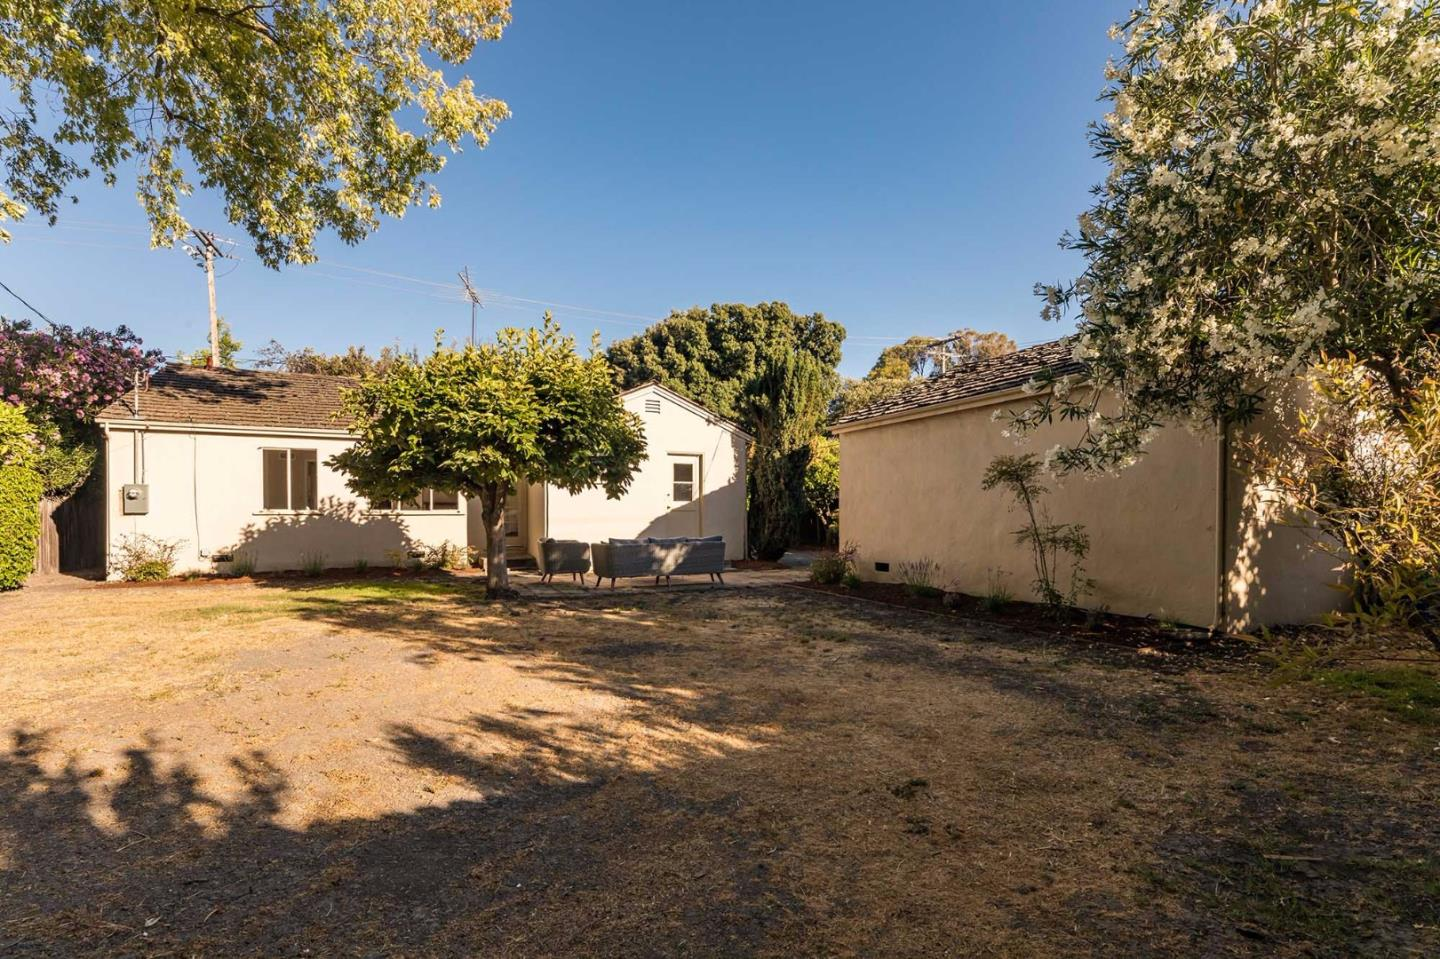 Additional photo for property listing at 275 San Antonio Road  Palo Alto, Калифорния 94306 Соединенные Штаты